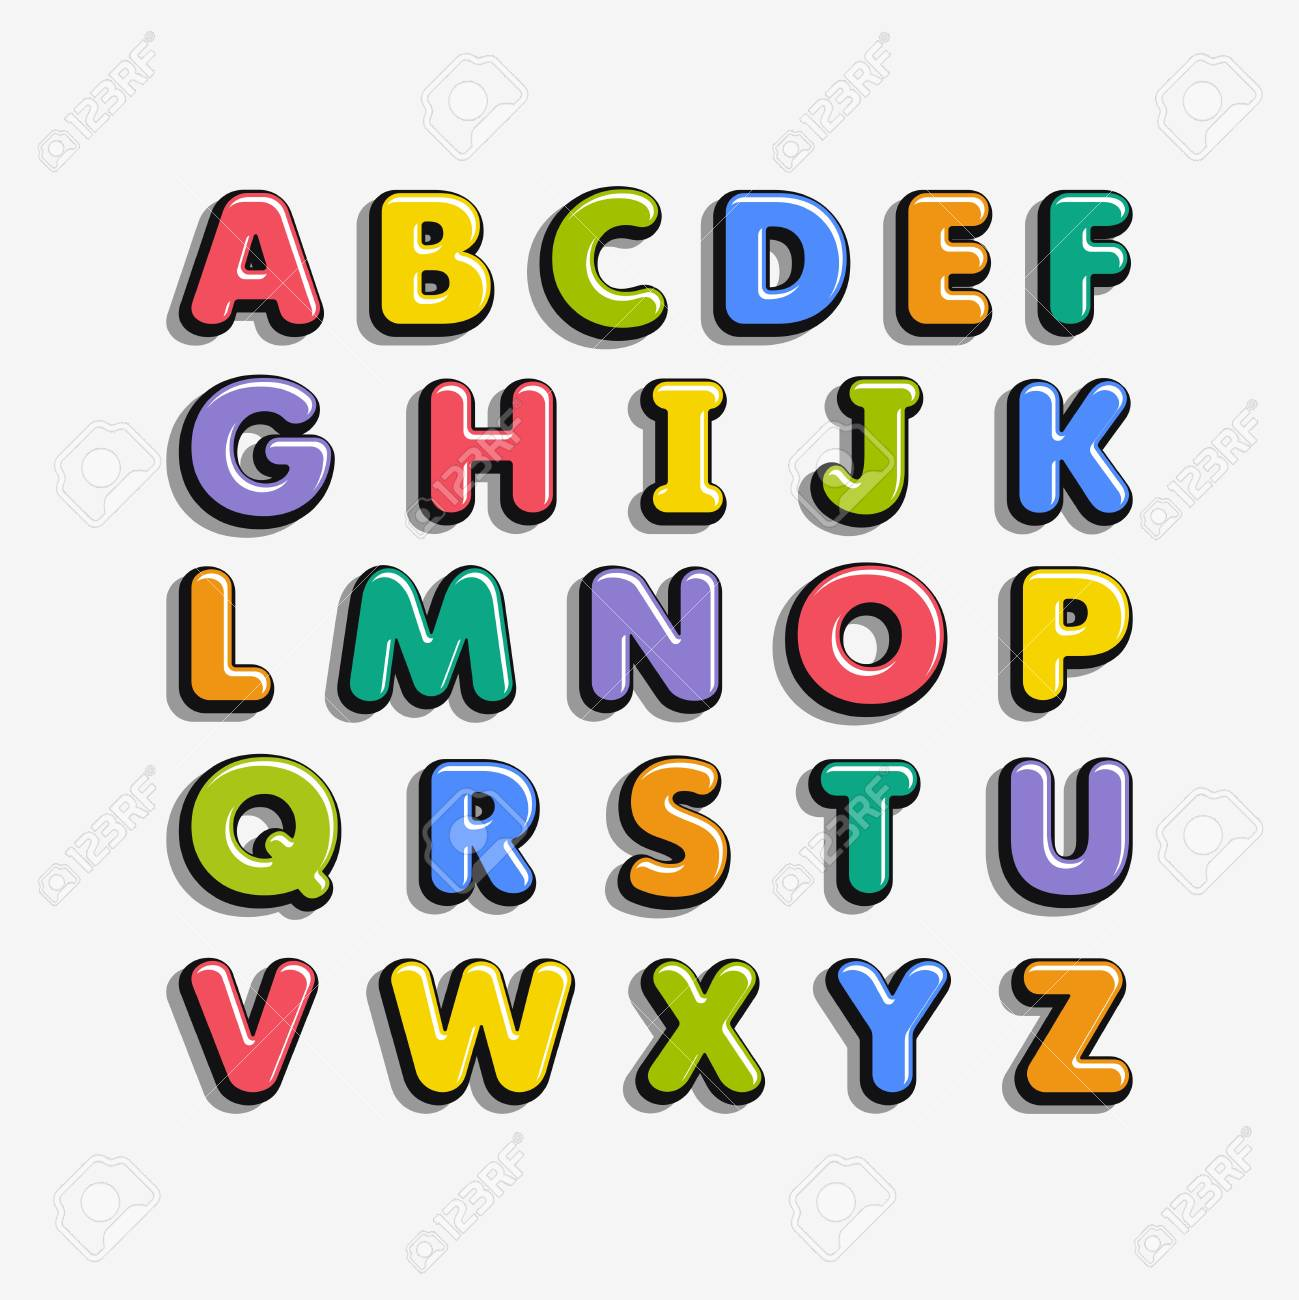 Alphabet for kids in the cartoon style. Children's font with colorful letters. Vector illustration. - 102585130